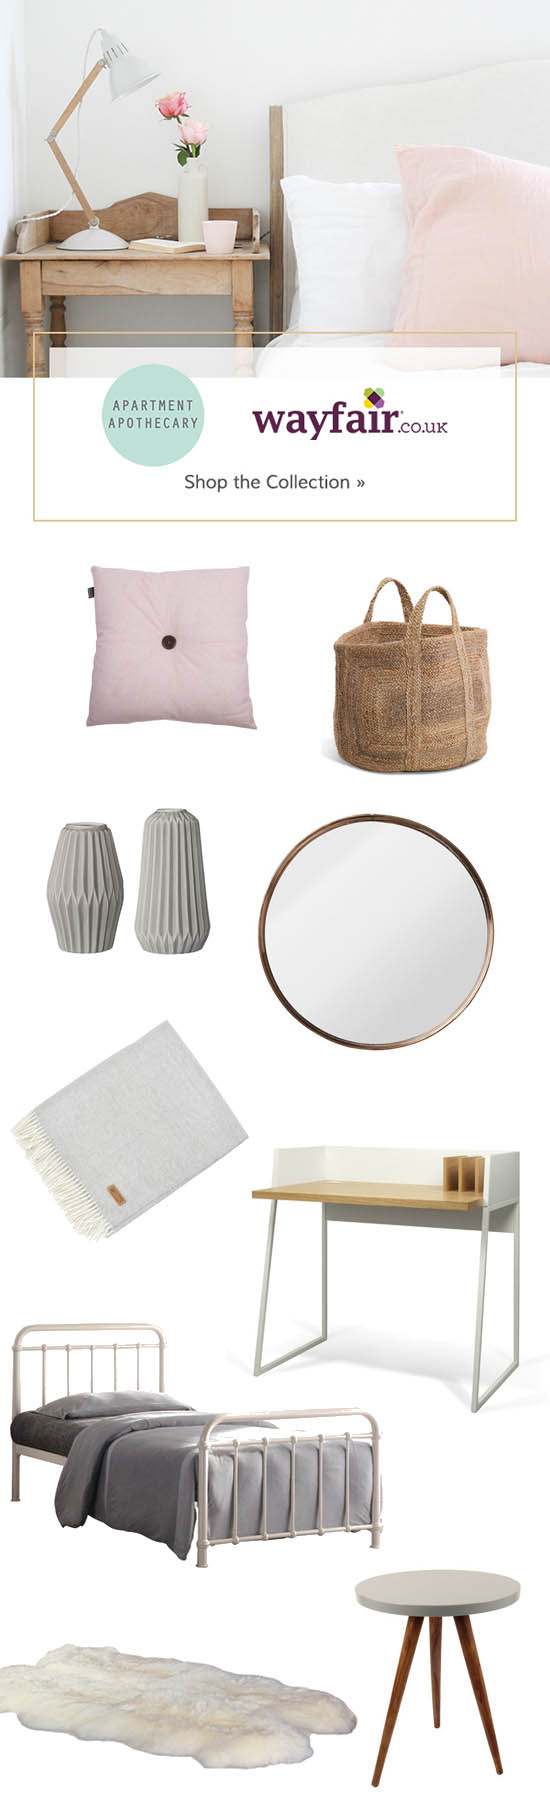 Wayfair curated sale | Apartment Apothecary